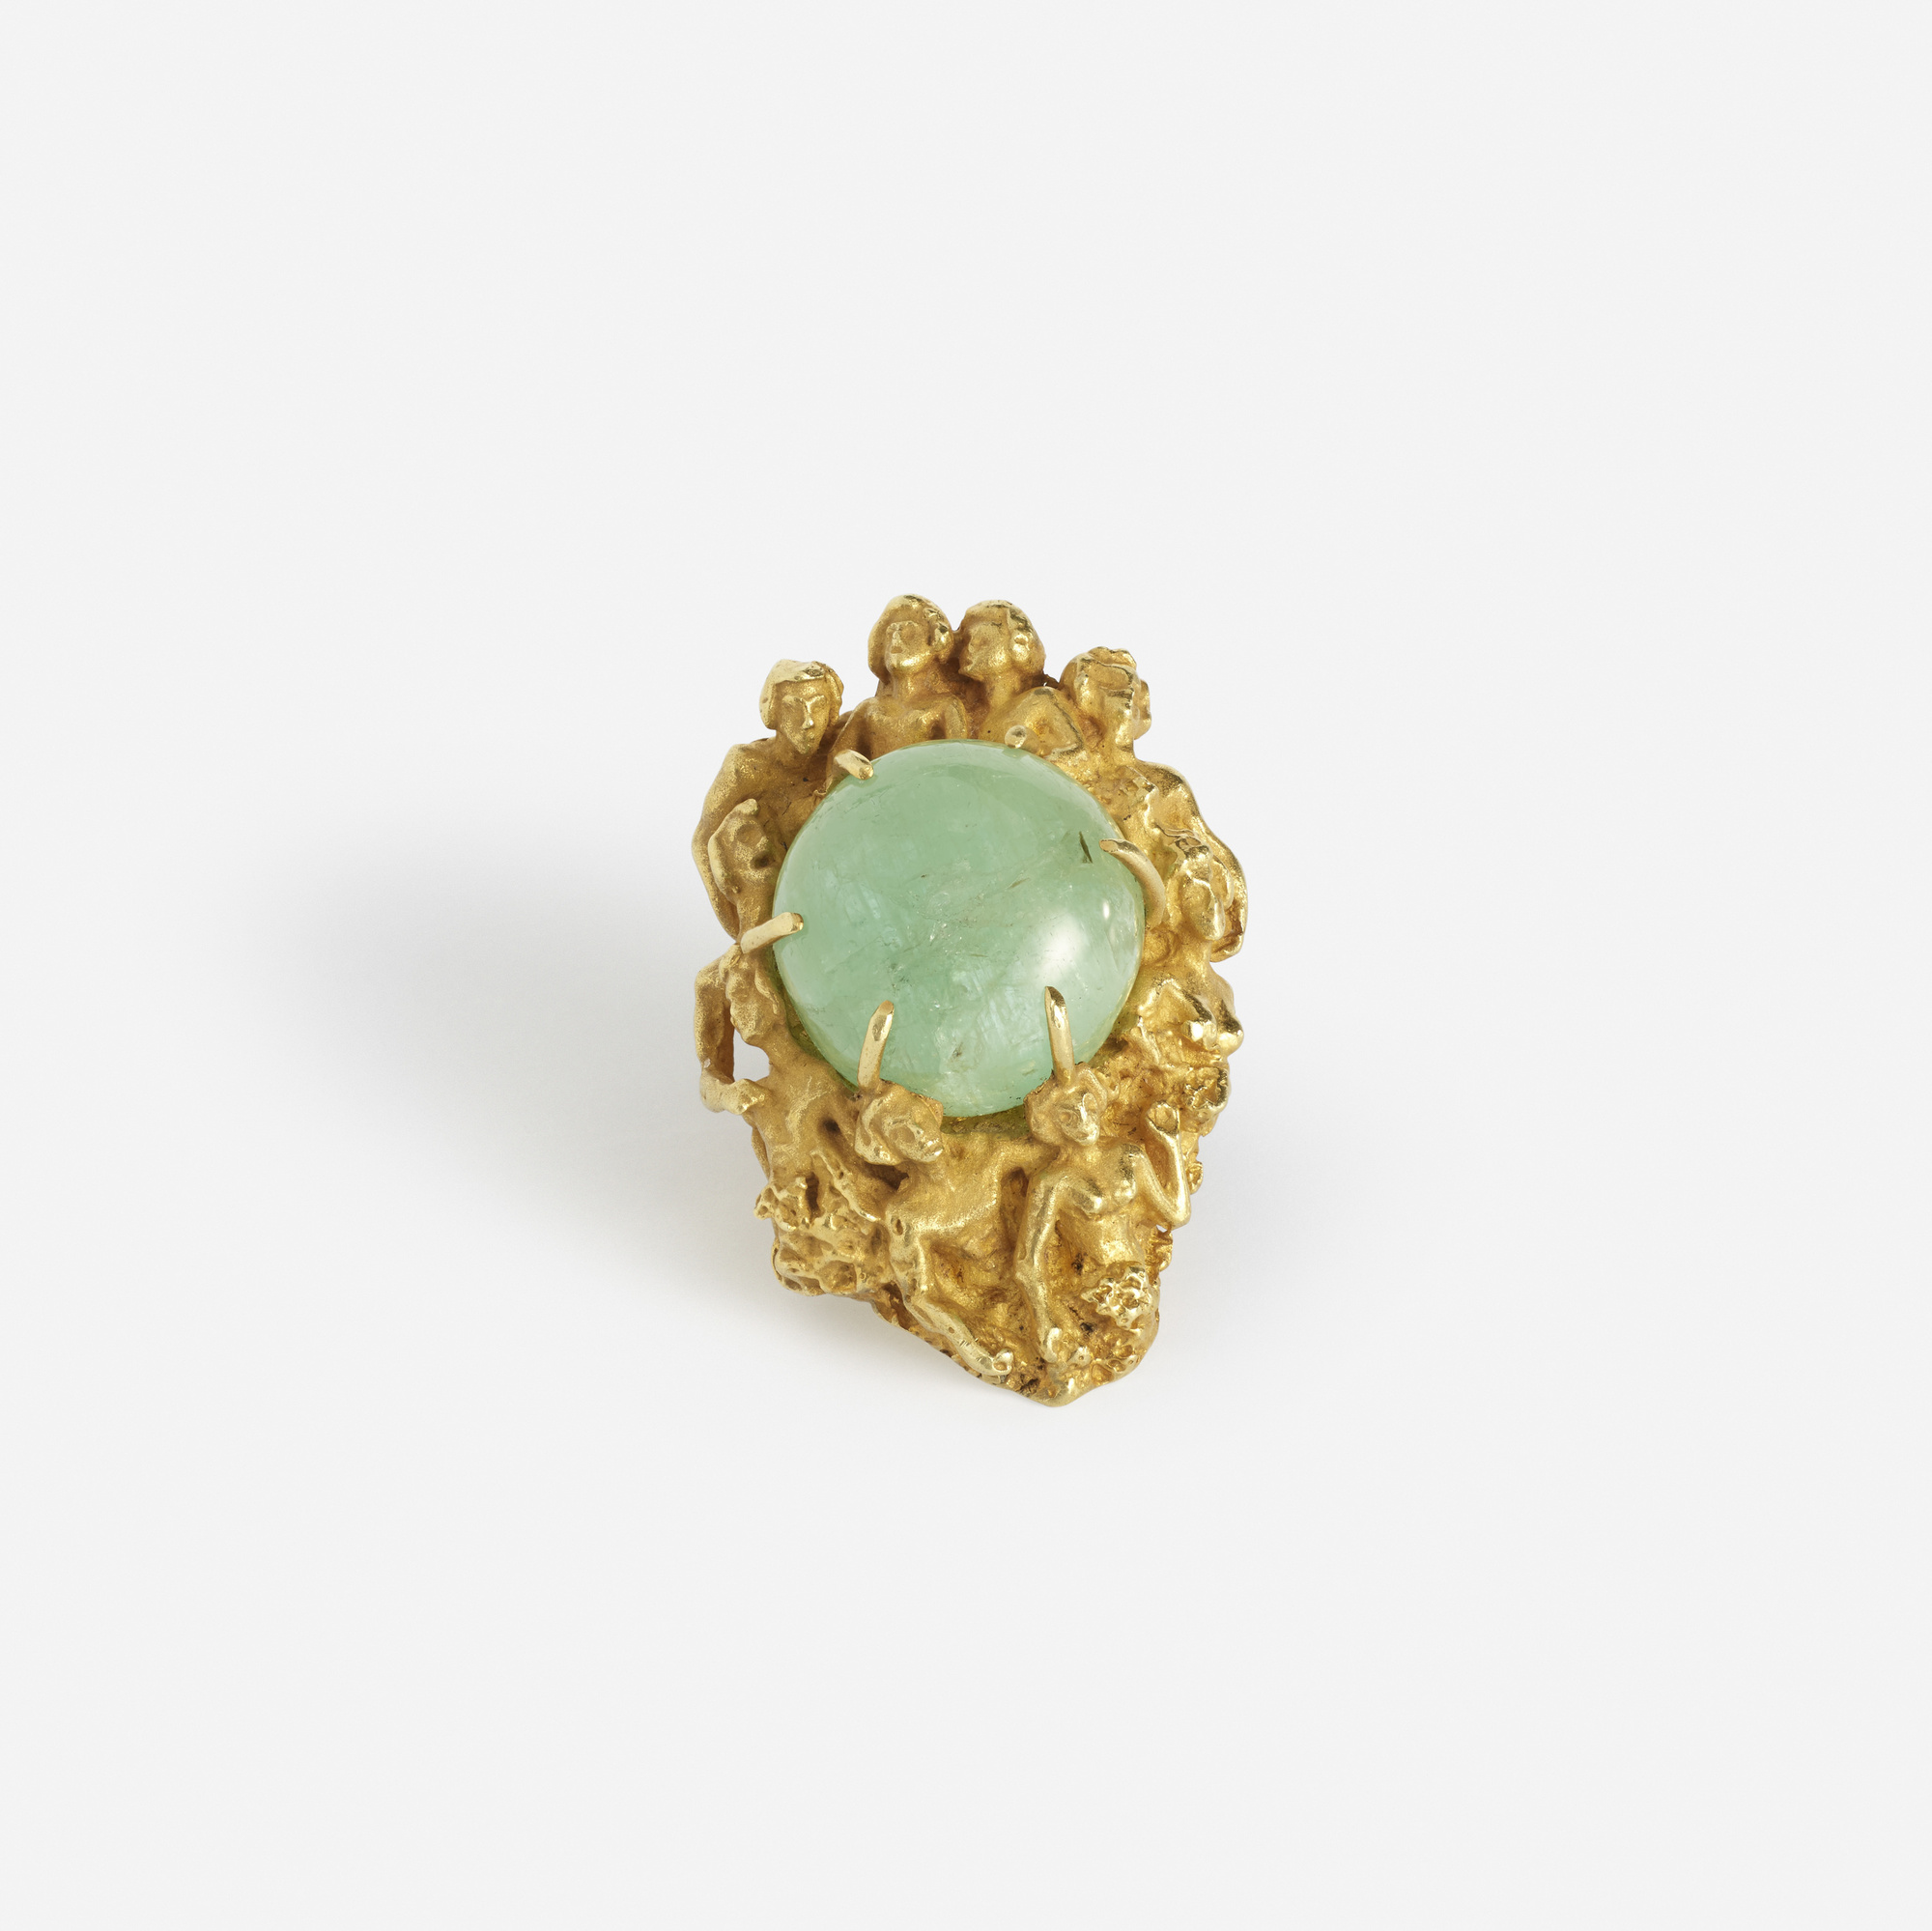 274: Eric de Kolb / A gold and emerald ring (1 of 2)